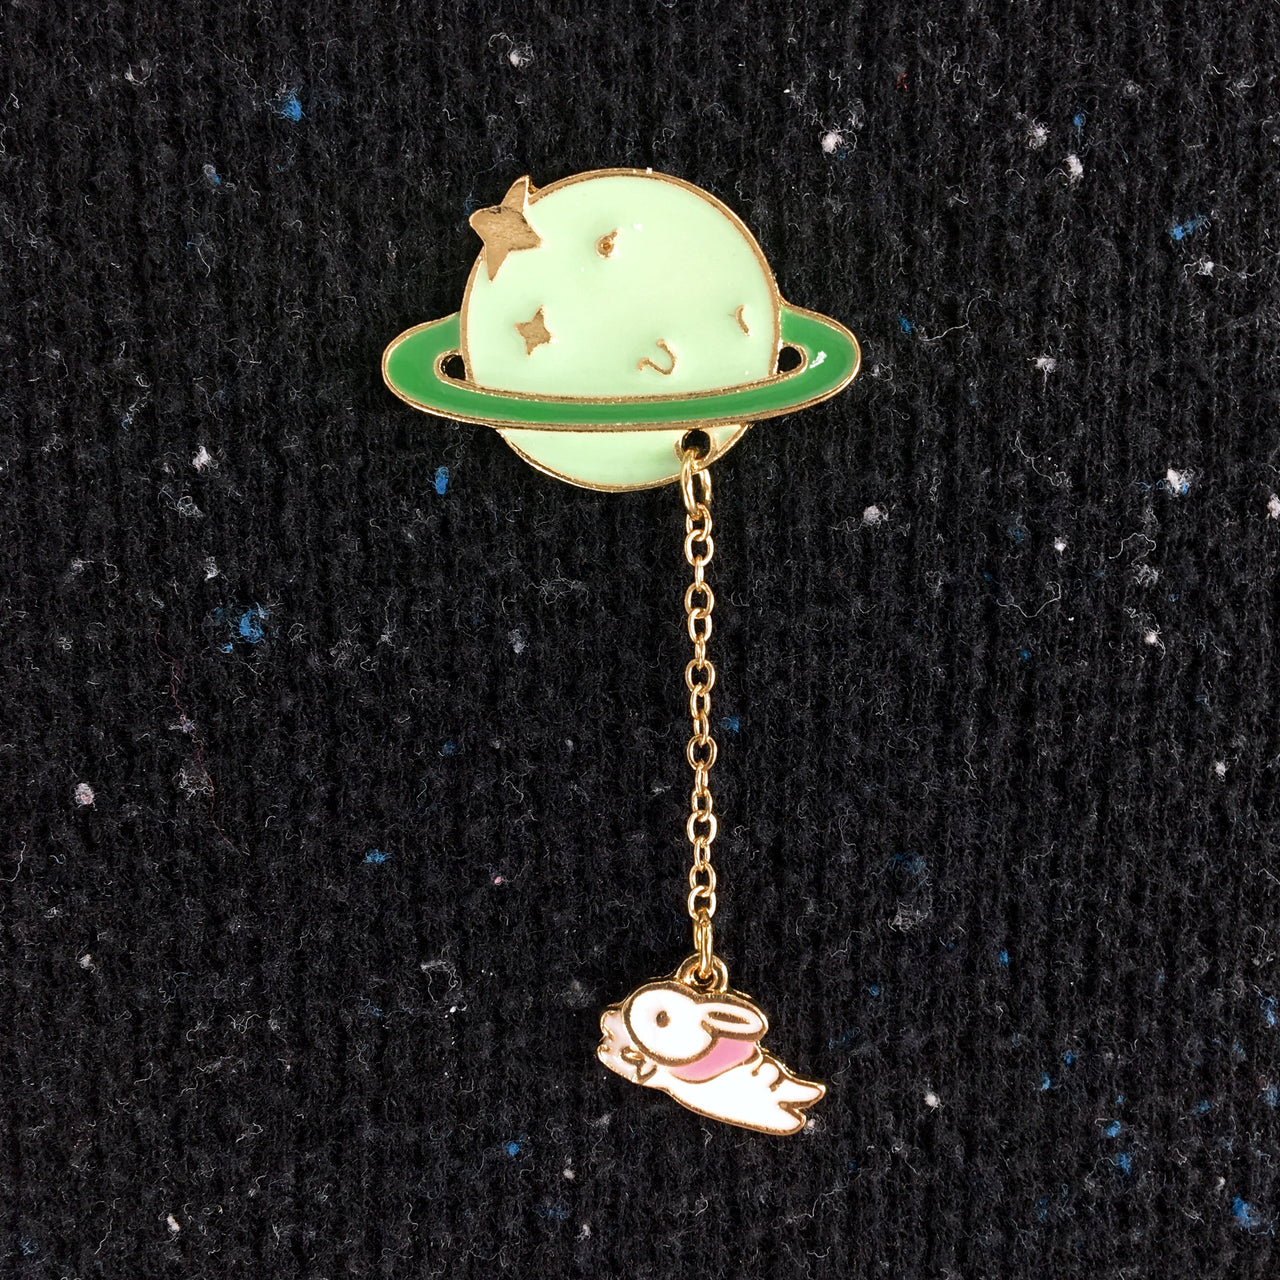 Space Rabbit Enamel Pin